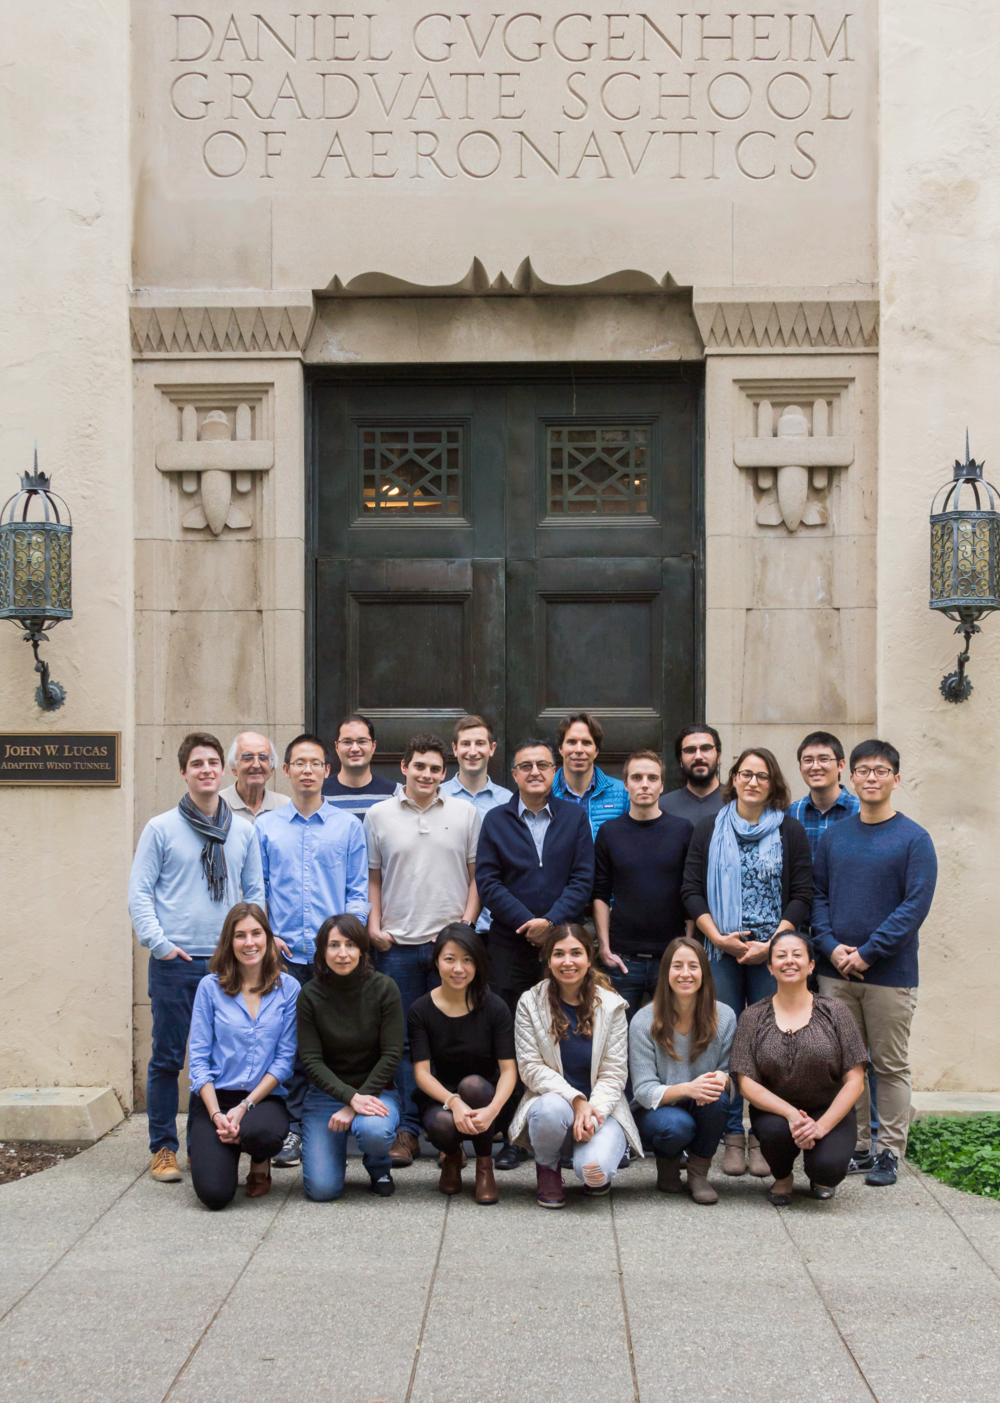 In front of the Guggenheim building for Aerospace Engineering at Caltech!  Going left to right. Front row: Stephanie, Isabelle, Jinglin, Azin, Cecilia, Martha. Middle row: Raimondo, Cong, Chris D., Professor Gharib, Damian, Morgane, Chris R. Back row: Masoud, Marcel, David B., Manu, Nathan.   Photo credit: Kali Dougherty from Kali Jeane Photography.